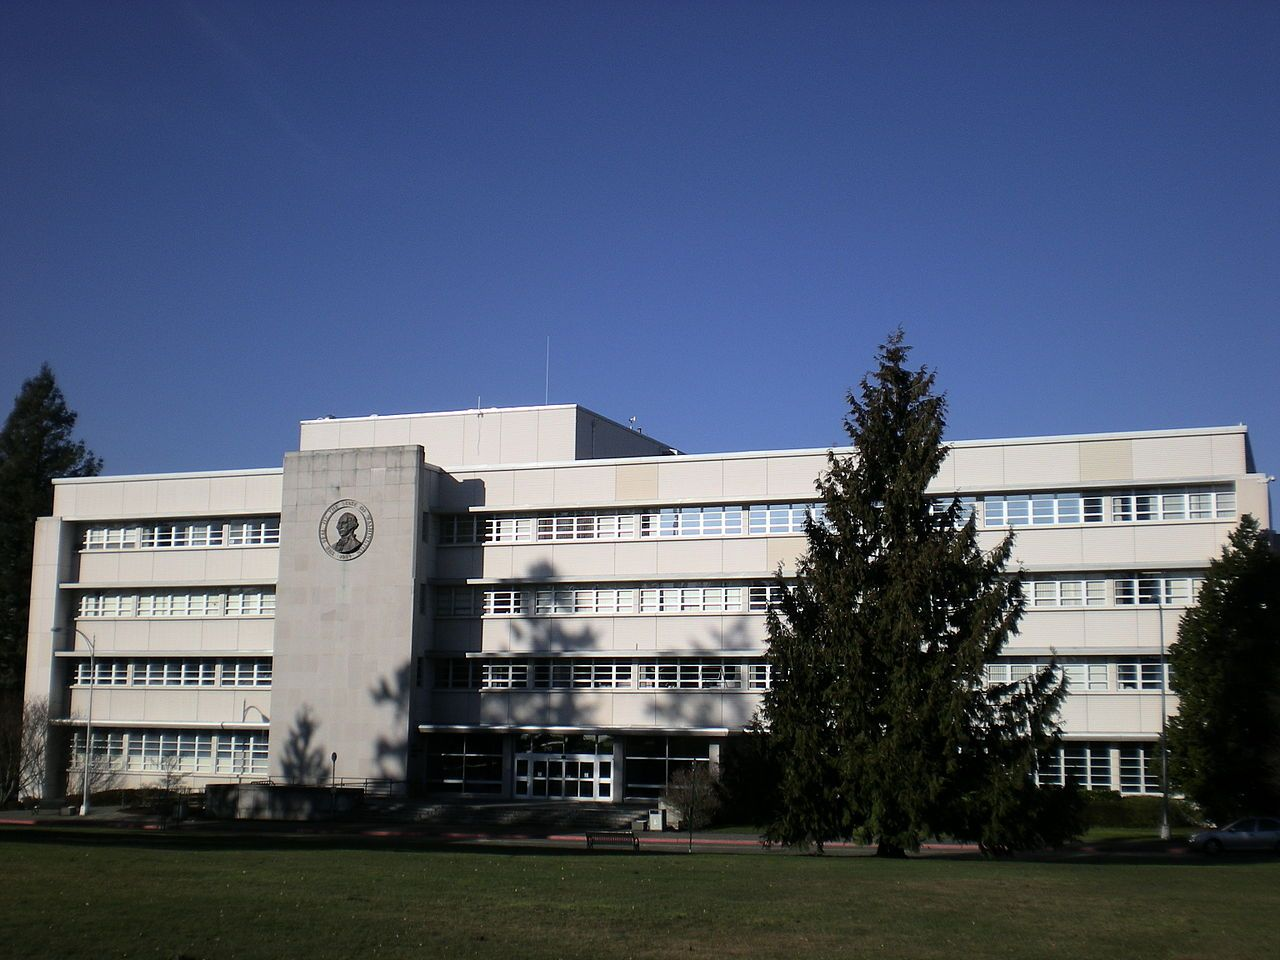 General Administration Building in Thurston County